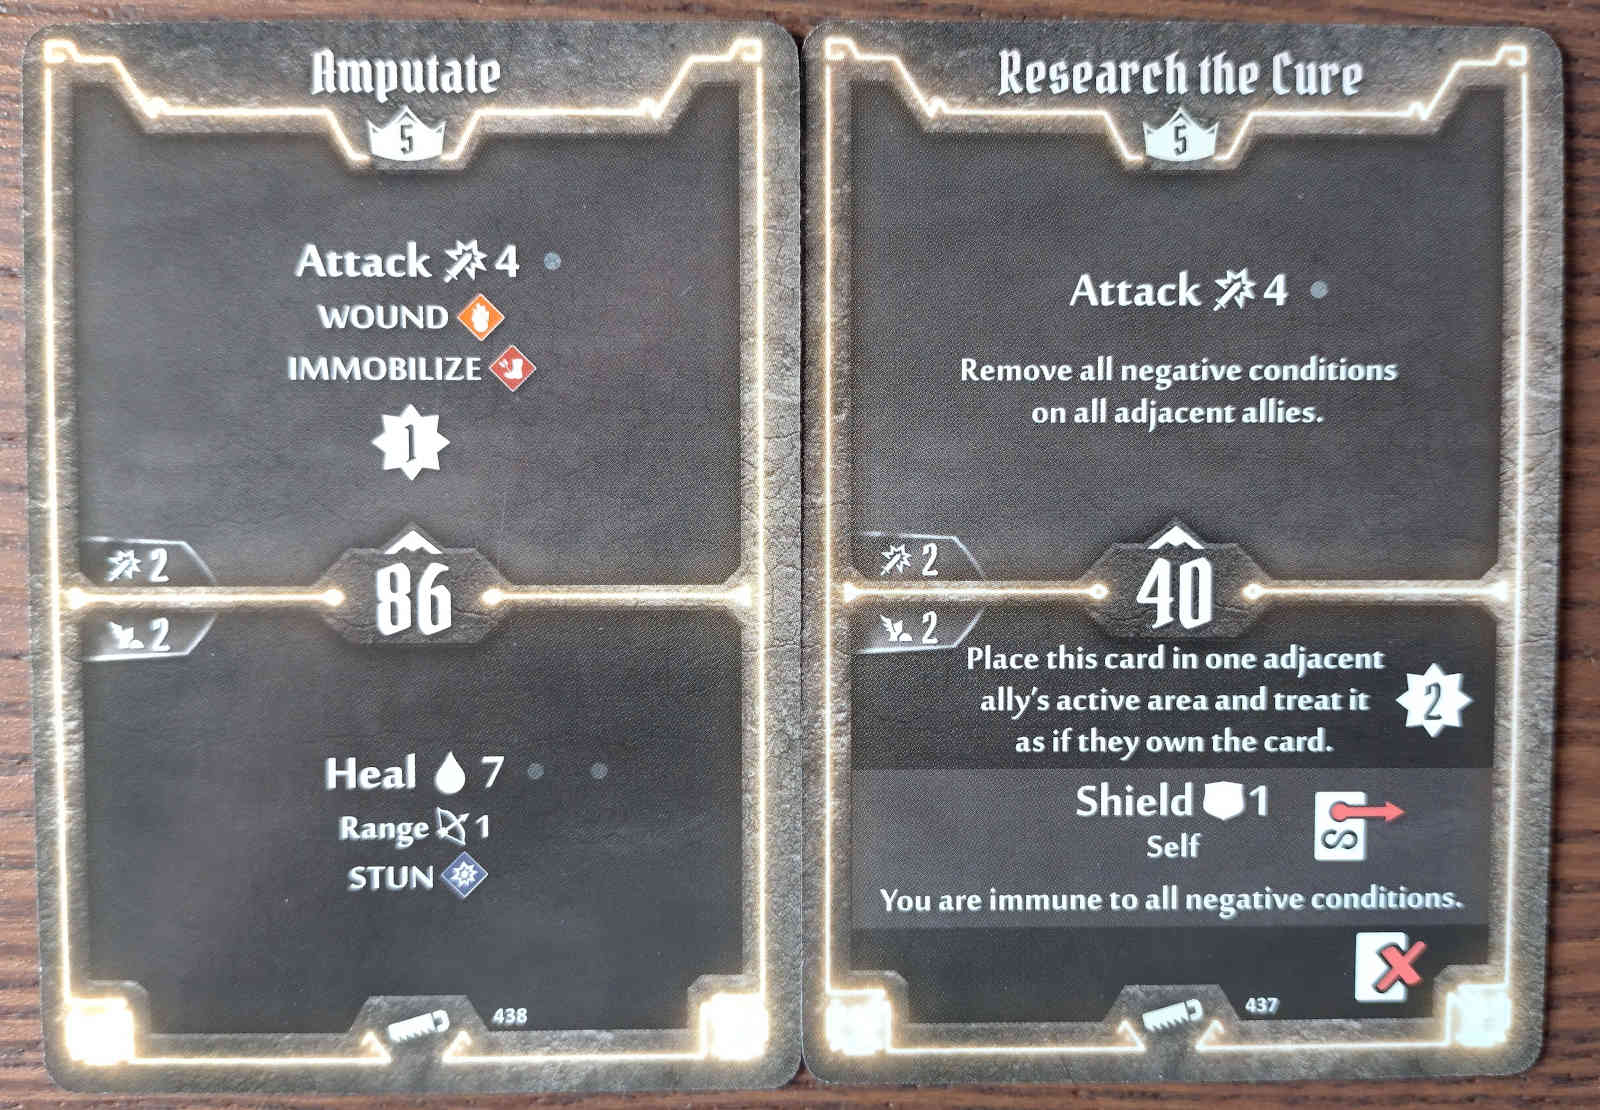 Level 5 Sawbones cards - Amputate and Research the Cure